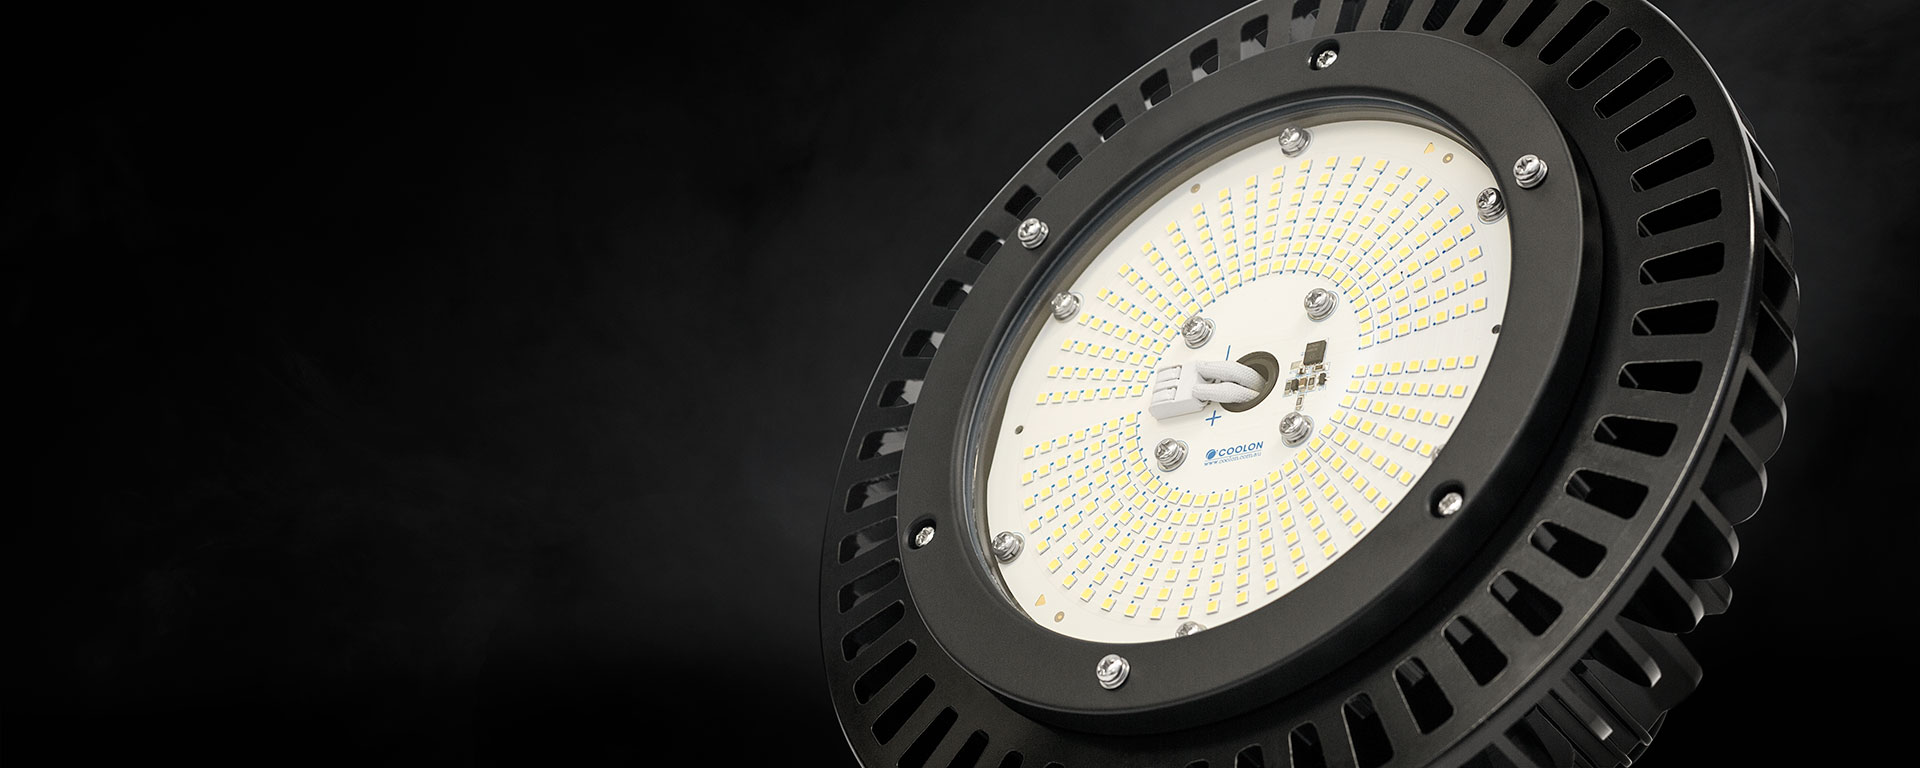 The AZIZ LIGHT™ is an extremely robust industrial LED high bay luminaire that has superiorperformance due to its tempered glass lens and cold-forged pure aluminium body.Perfect for theprocessing plant and warehouse applications.